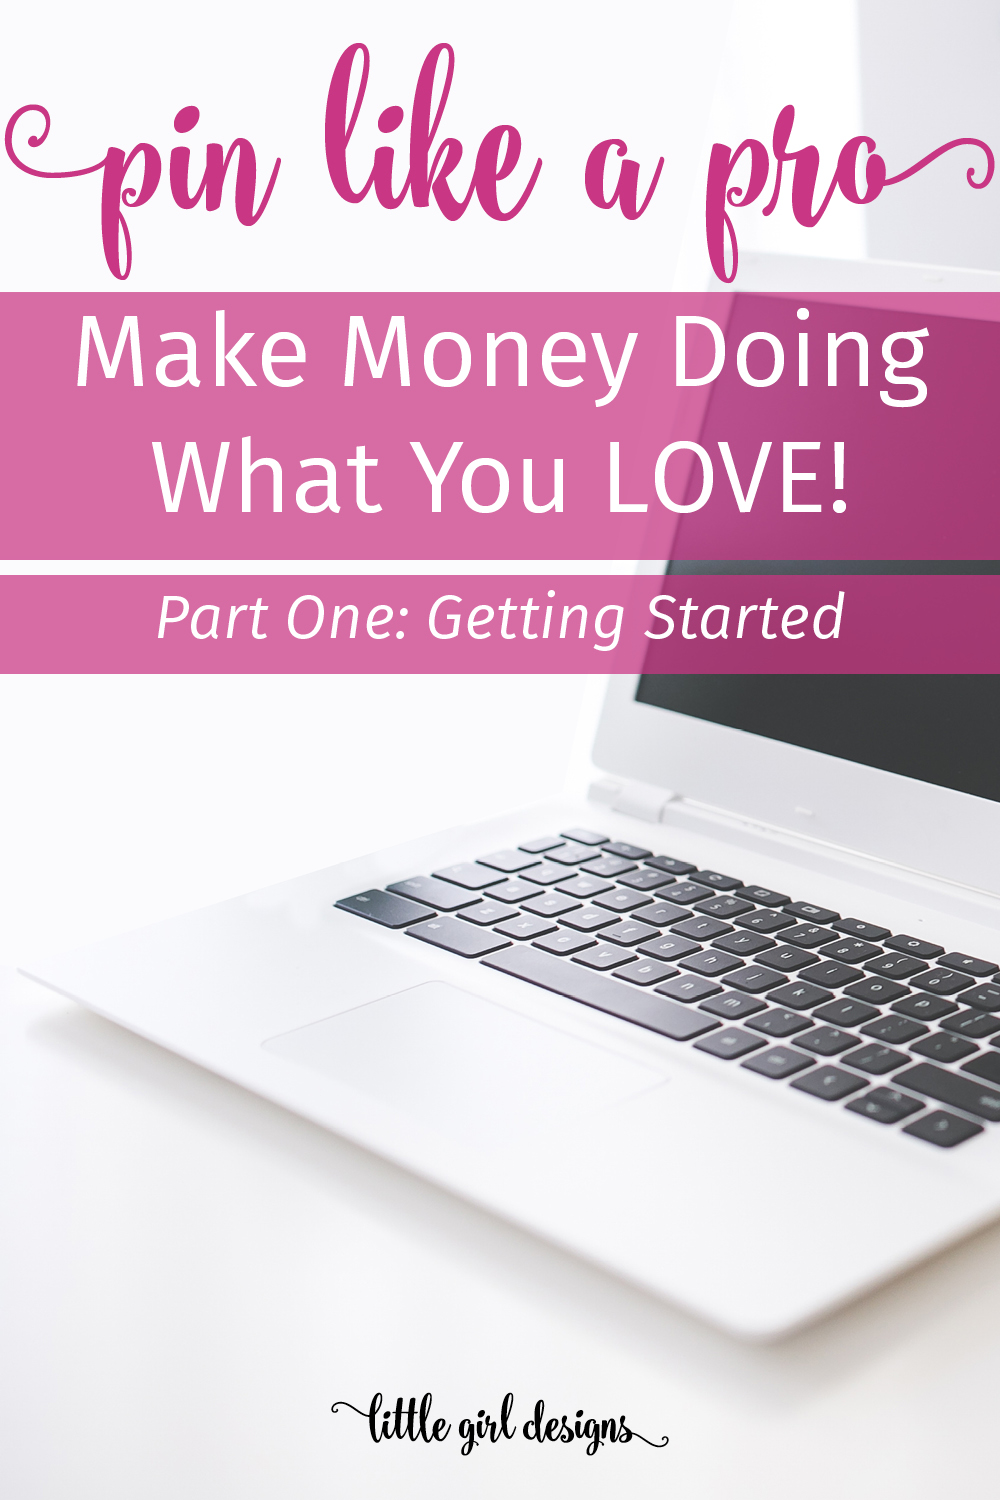 Learn how to make money by utlitizing the power of Pinterest! In this lesson we start at the very beginning by setting up a business account, completing a branding exercise, and creating new, awesome boards!